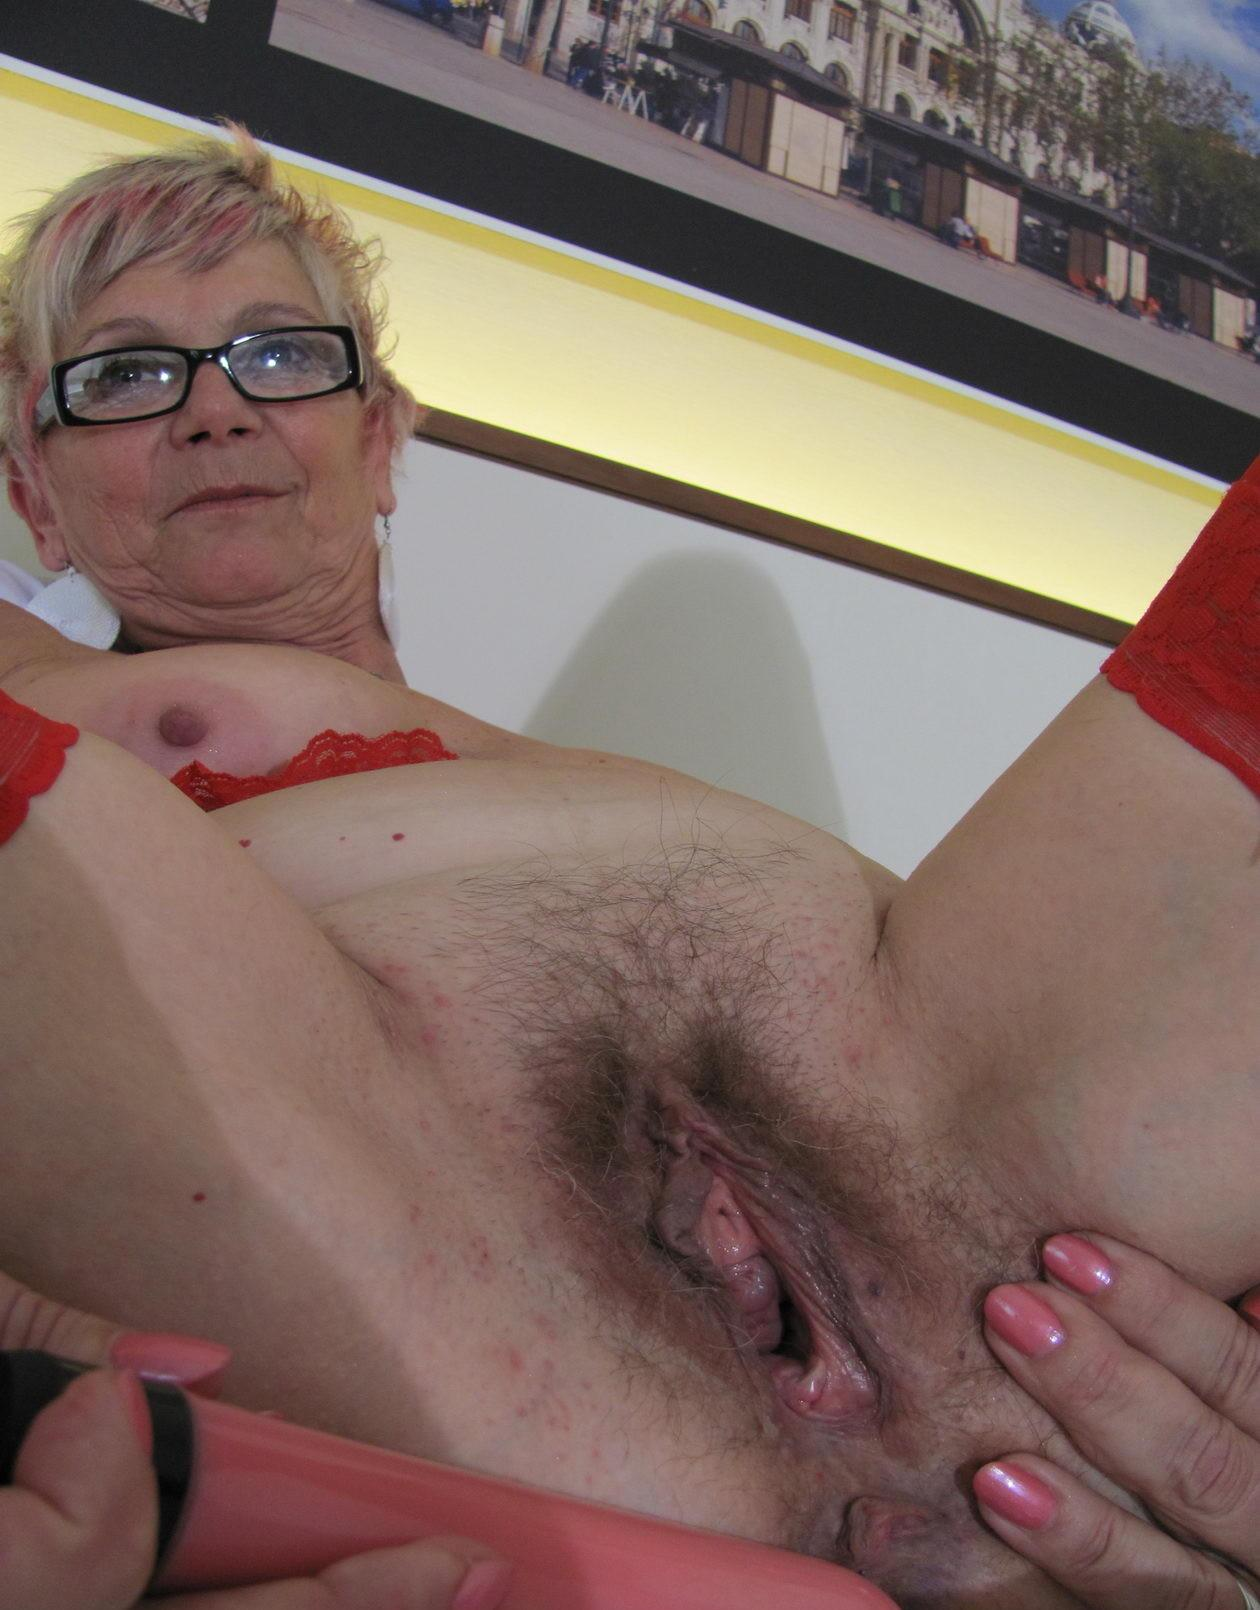 grandmother i love to fuck gladly accepts offers to take it